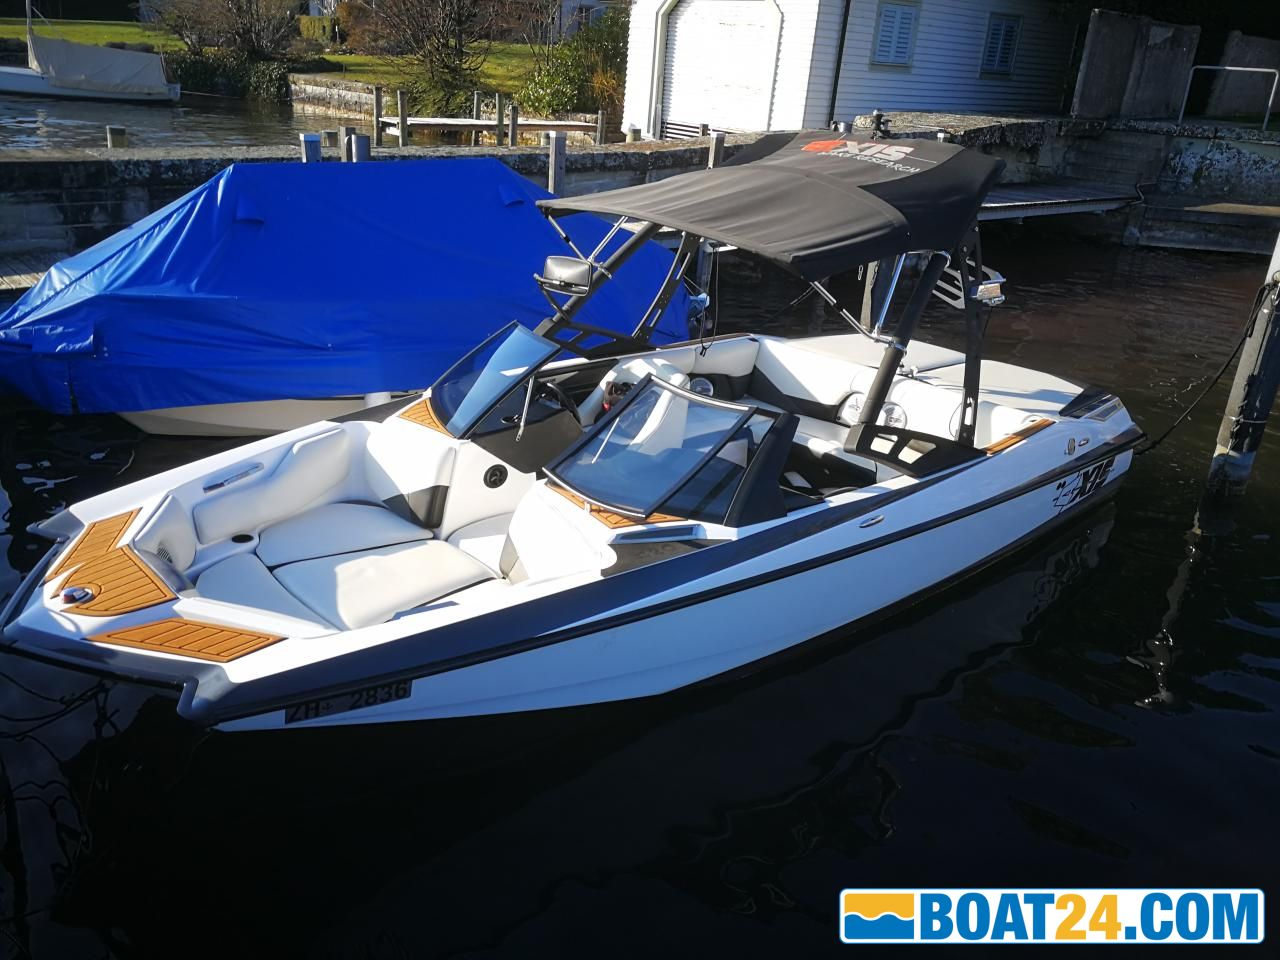 Axis A20, CHF 48,000 | boat24 com/uk